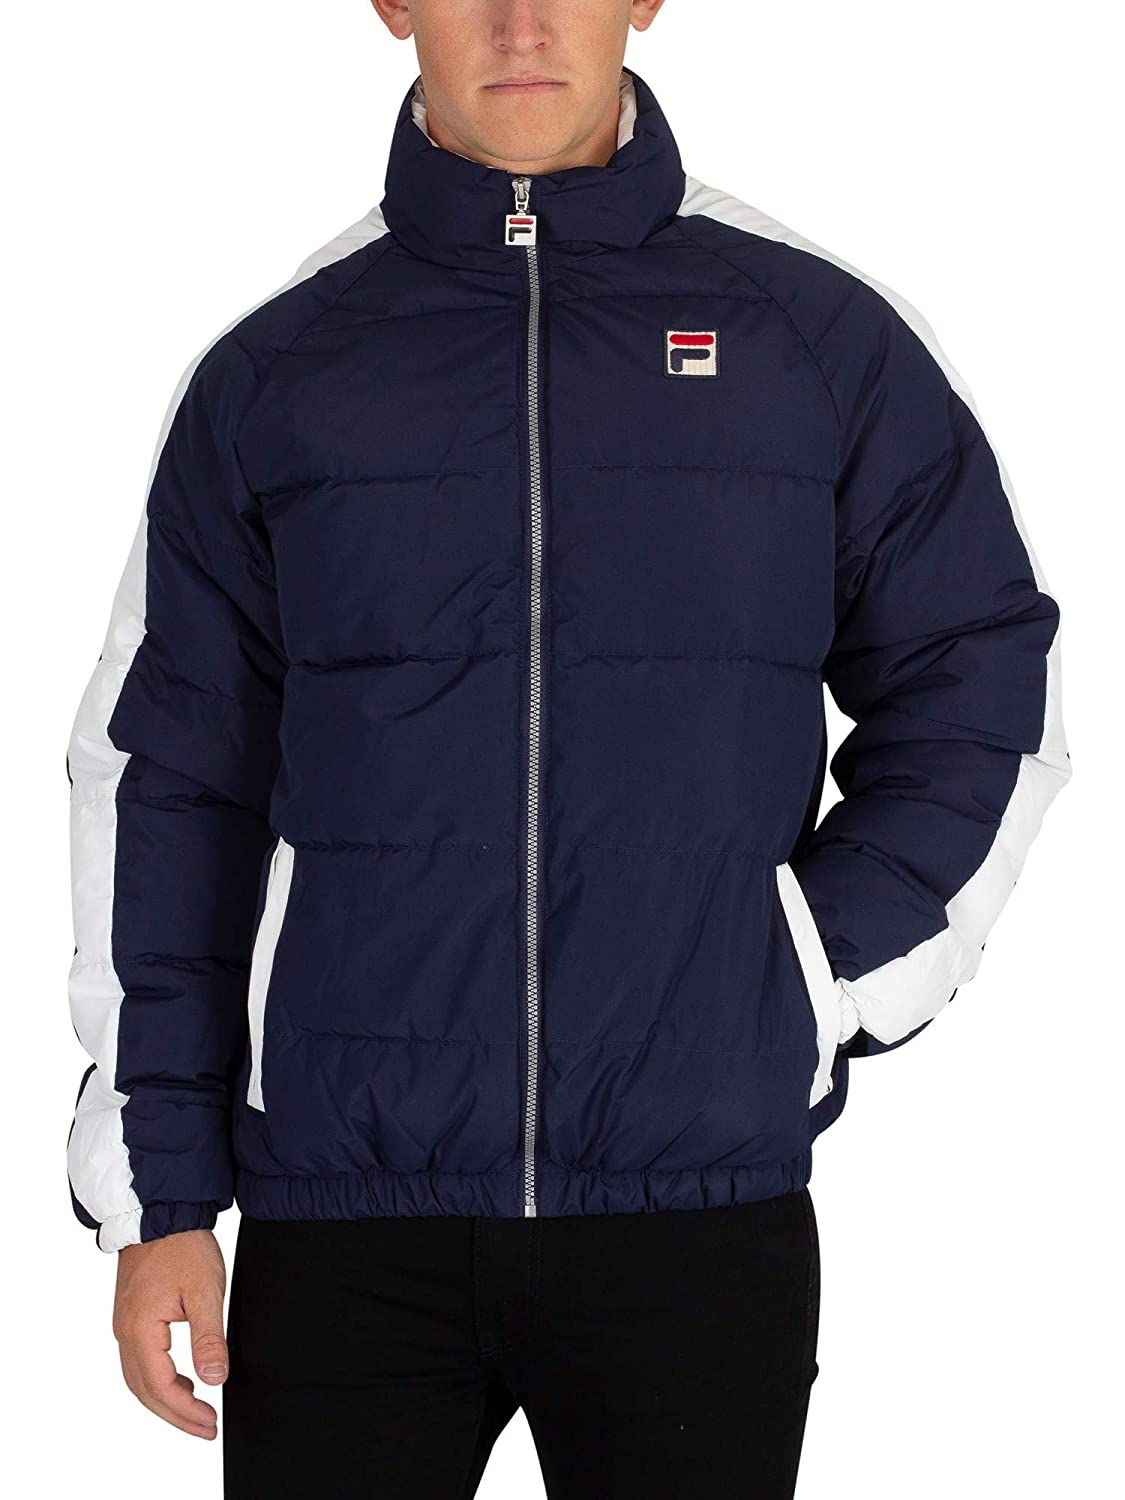 Fila Vintage Men's Ledger Puffer Jacket, Blue